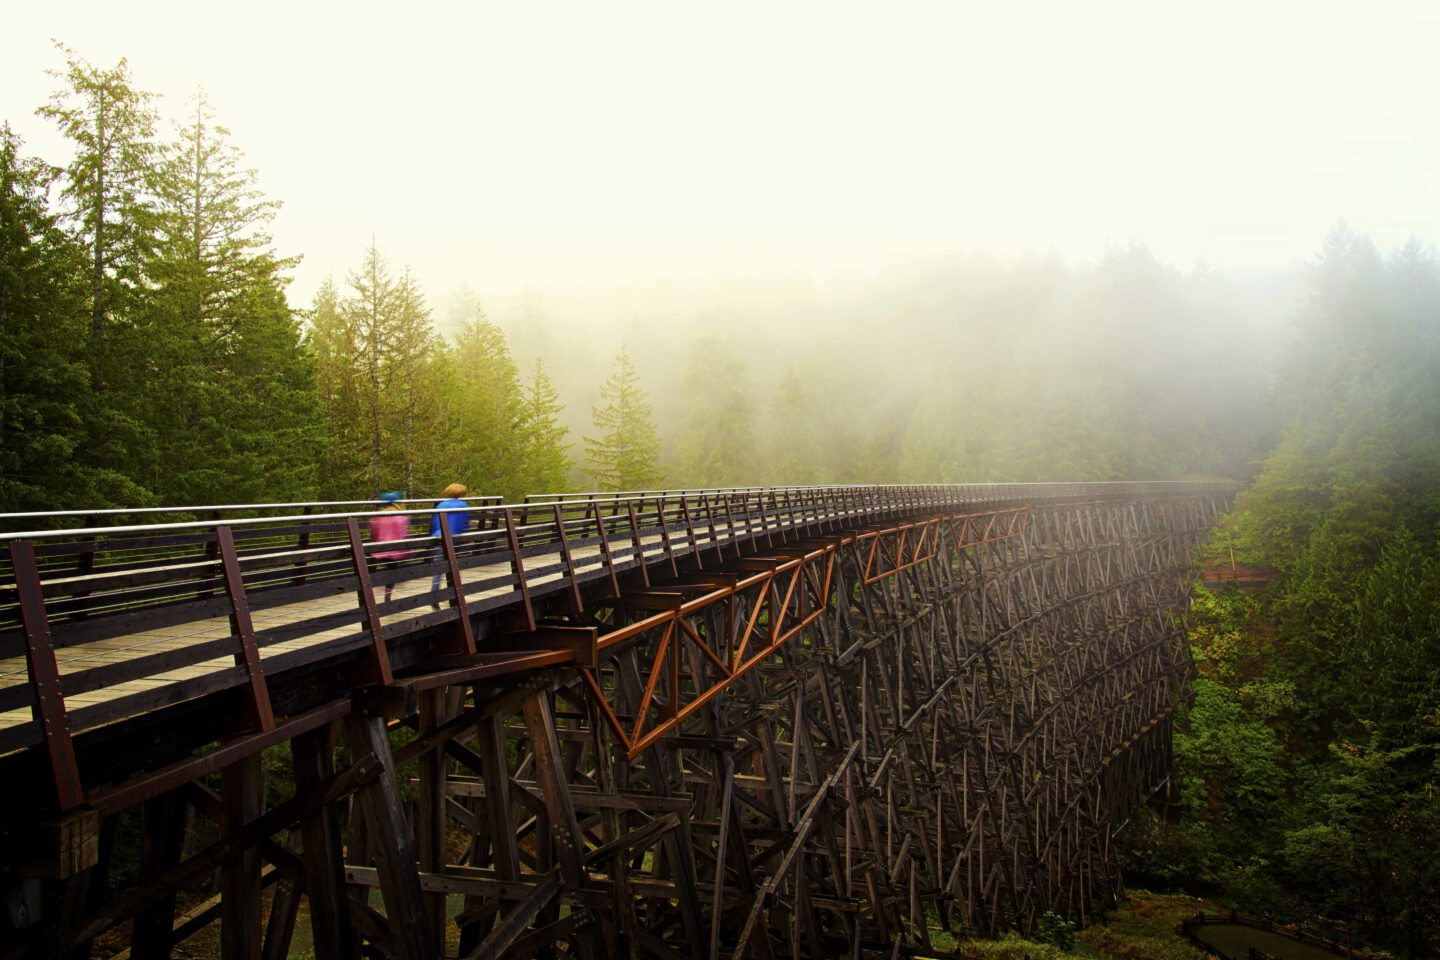 Kinsol Trestle, Vancouver Island, BC